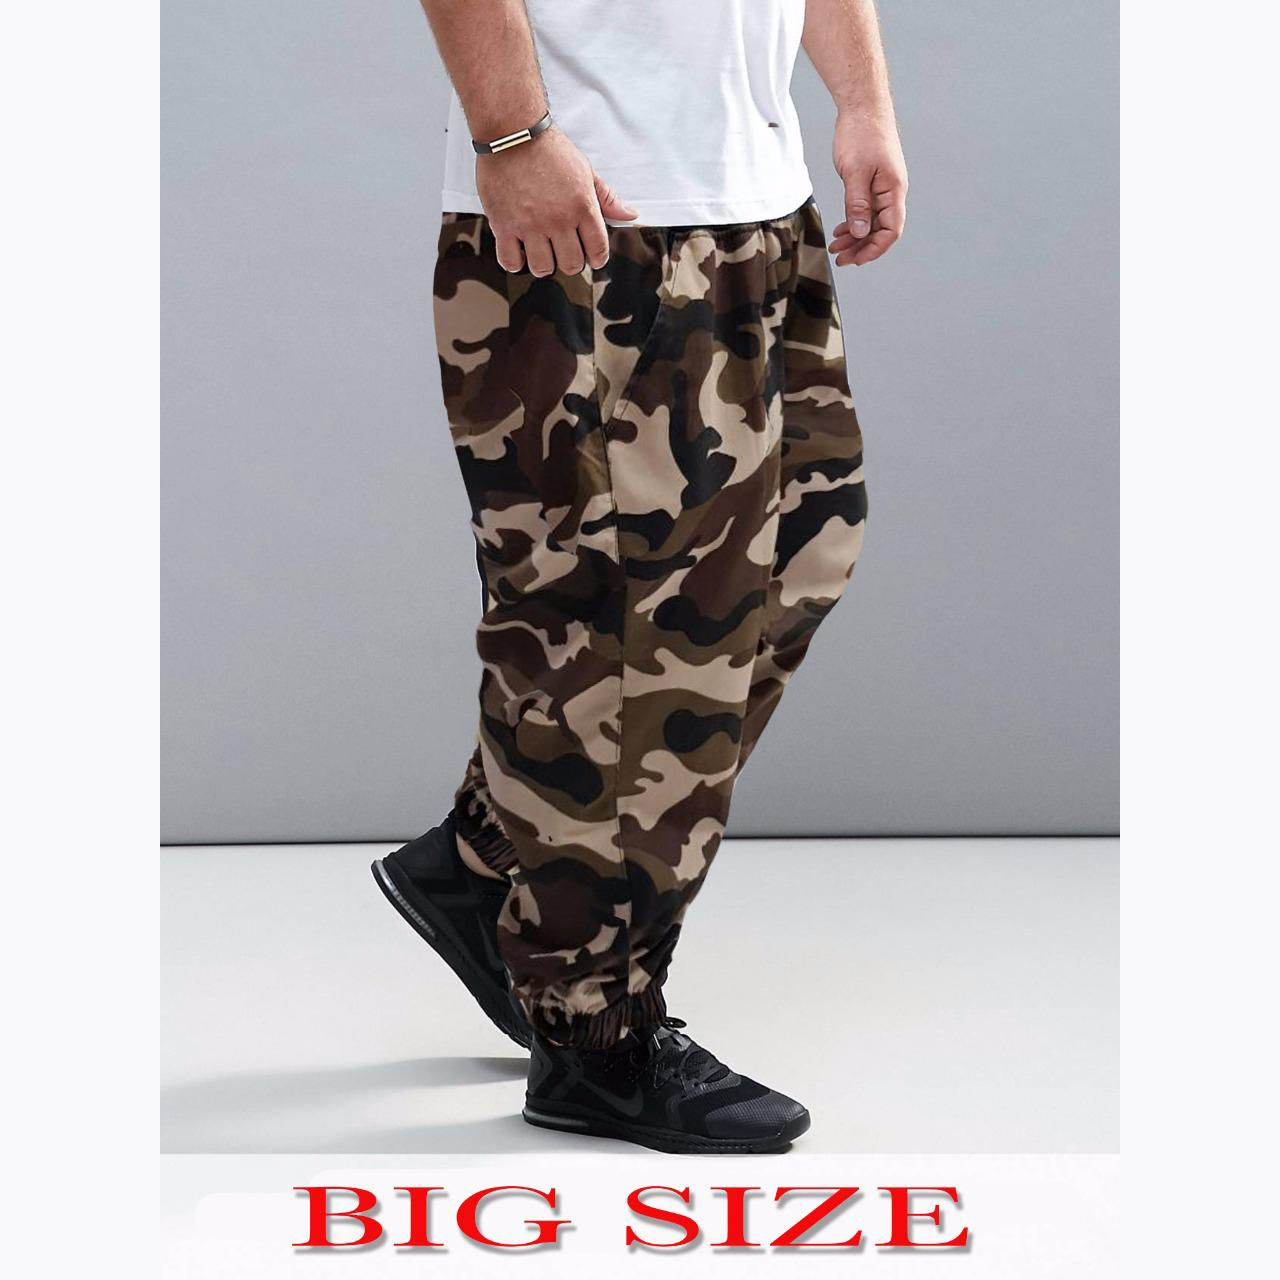 Jfashion Celana Jogger Training Panjang Pria Basic Brooklyn Spec Felix Jumbo Joger Olahraga Big Size Gambar Produk Rinci Corak Army Men